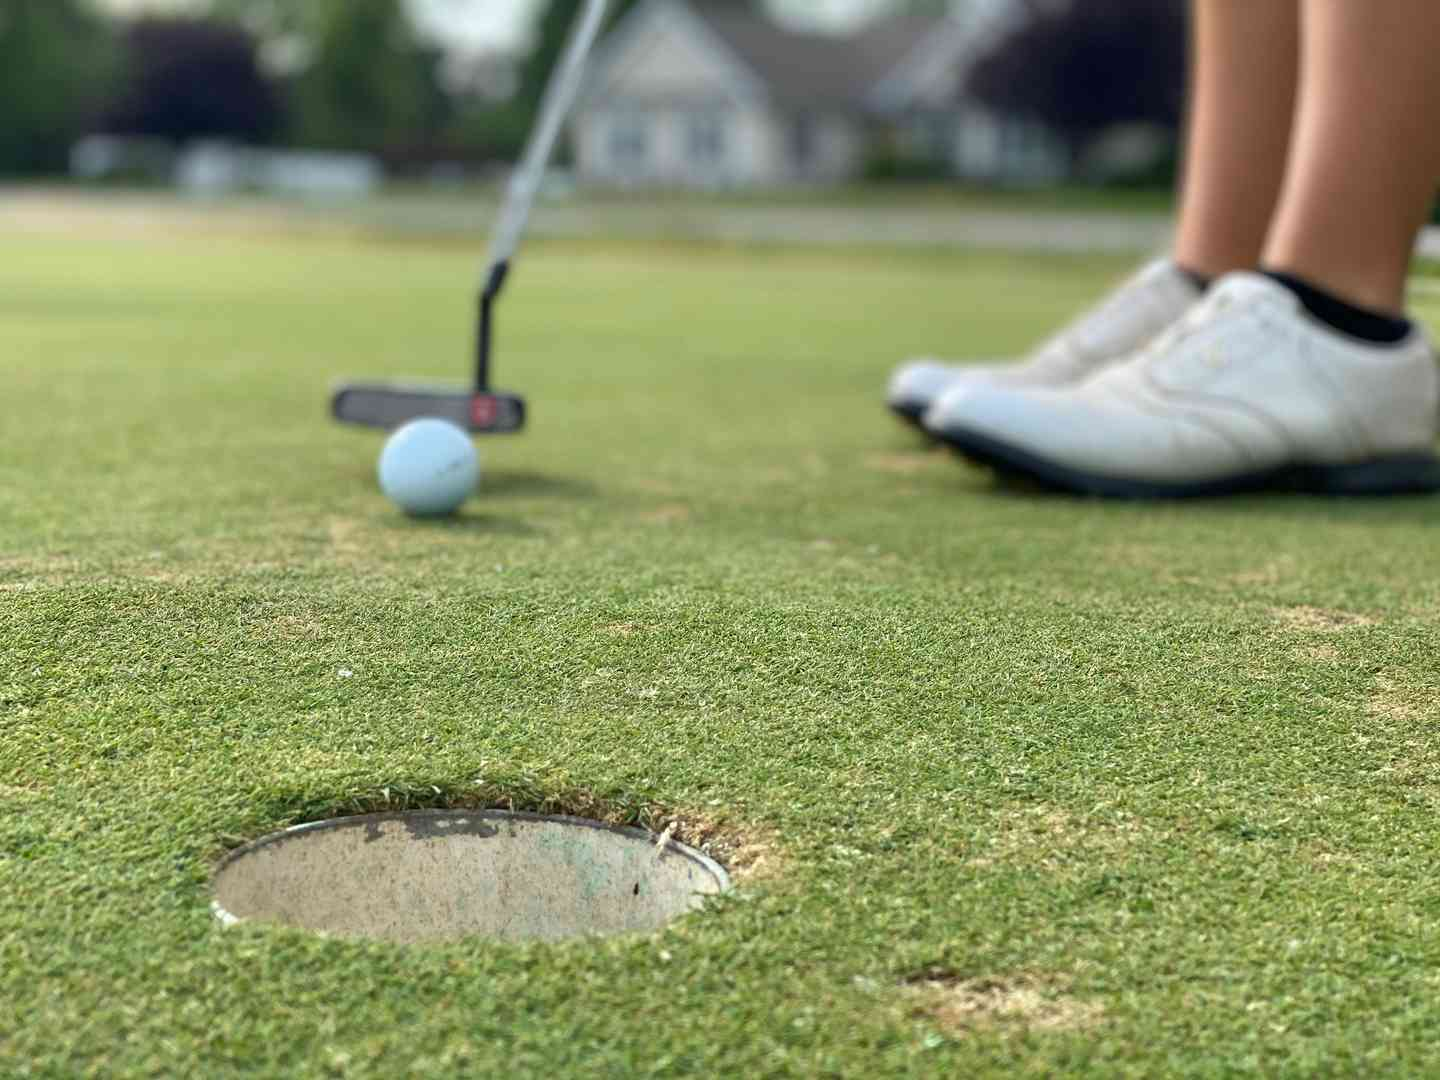 Golf hole with person preparing to hit a golf ball